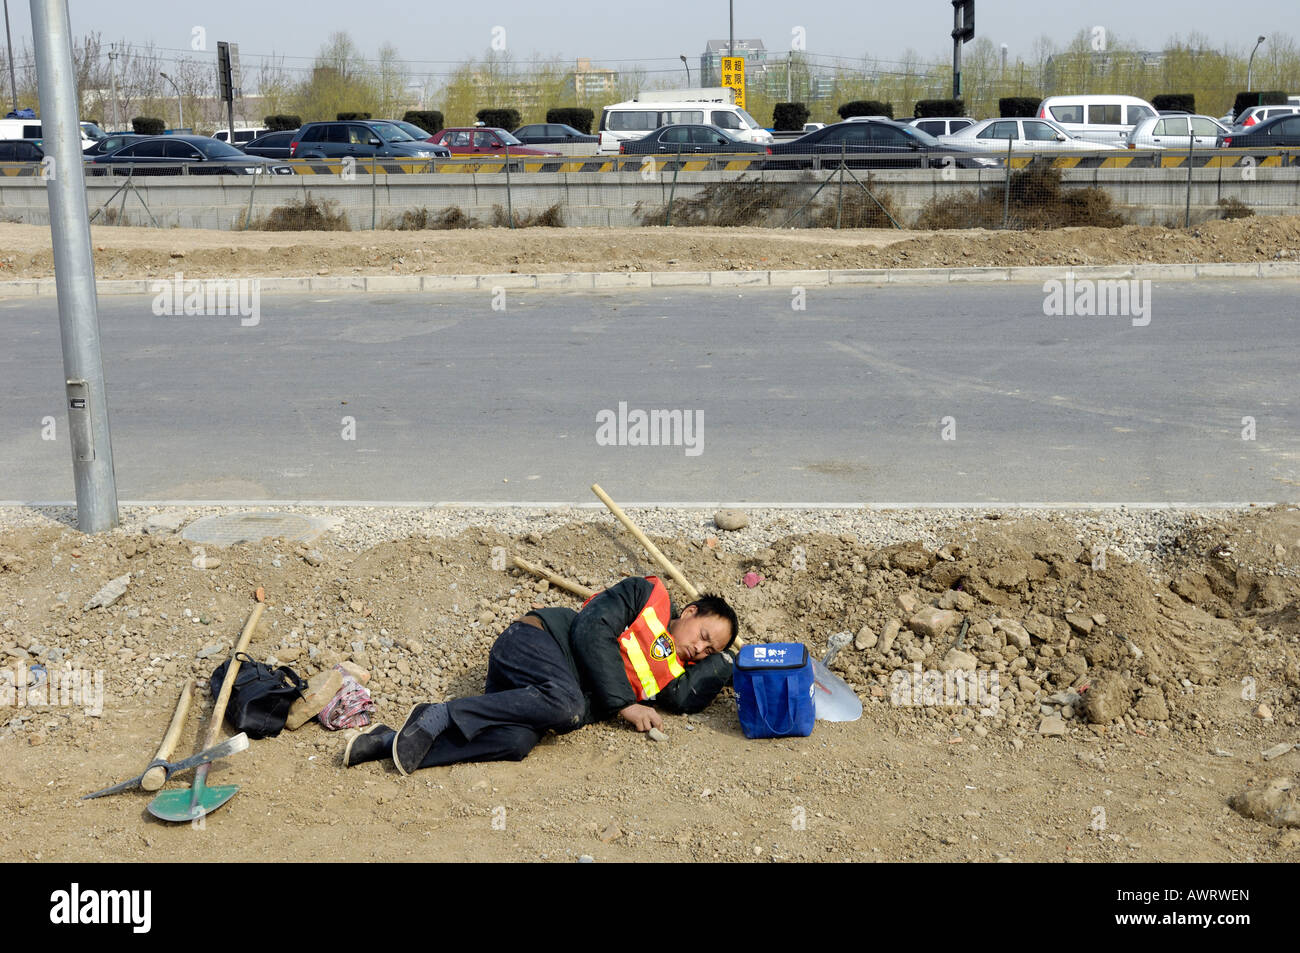 A worker lying on ground while planting trees in the 2008 Olympic Park in Beijing, China. 14-Mar-2008 - Stock Image